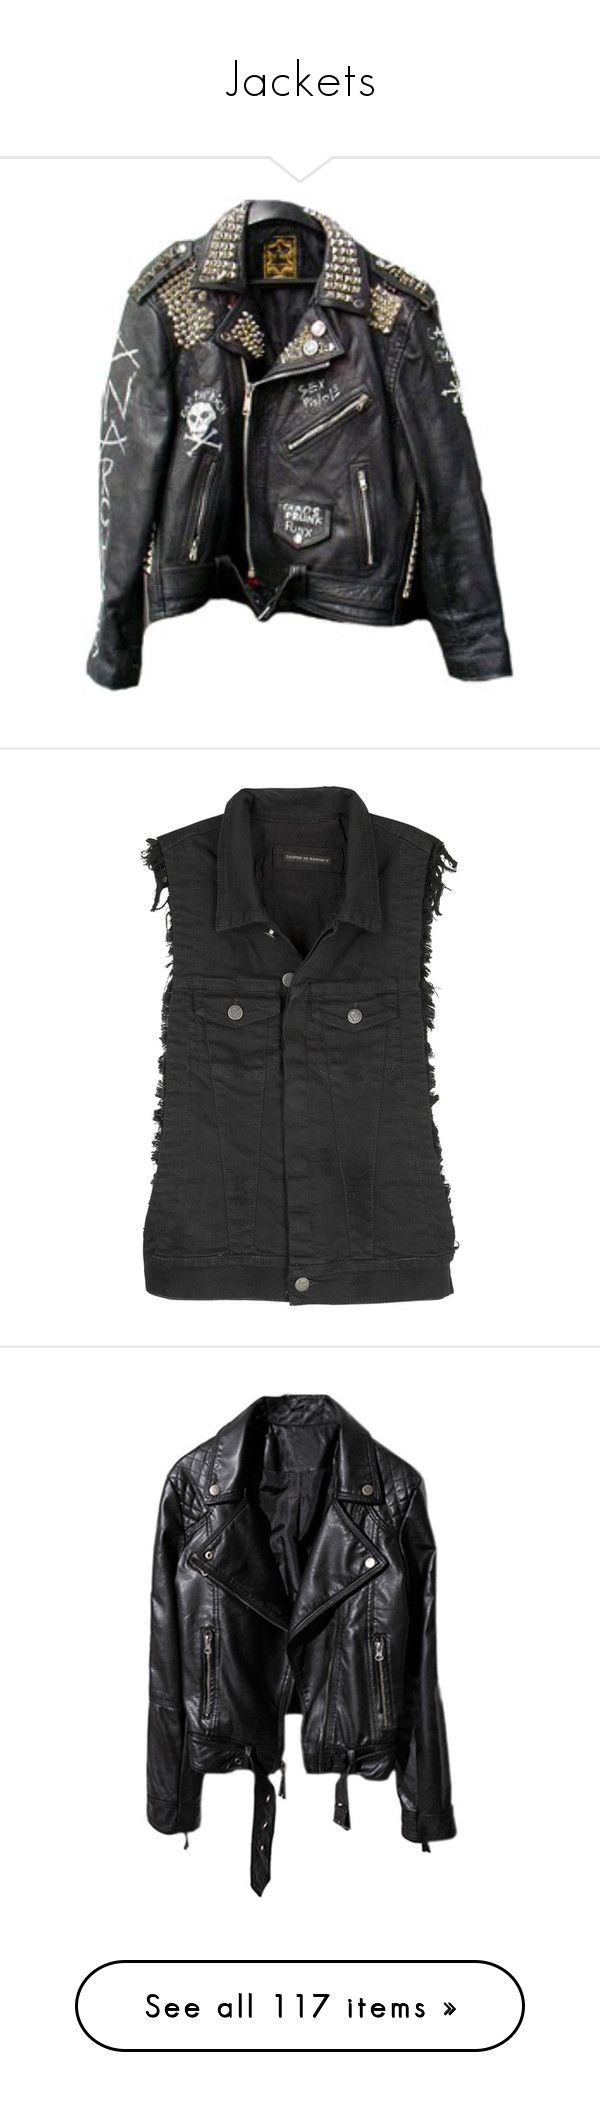 """""""Jackets"""" by jeanettebeatrice ❤ liked on Polyvore featuring jackets, outerwear, tops, coats, vests, vest waistcoat, denim waistcoat, sleeveless vest, denim vests and sleeveless waistcoat"""